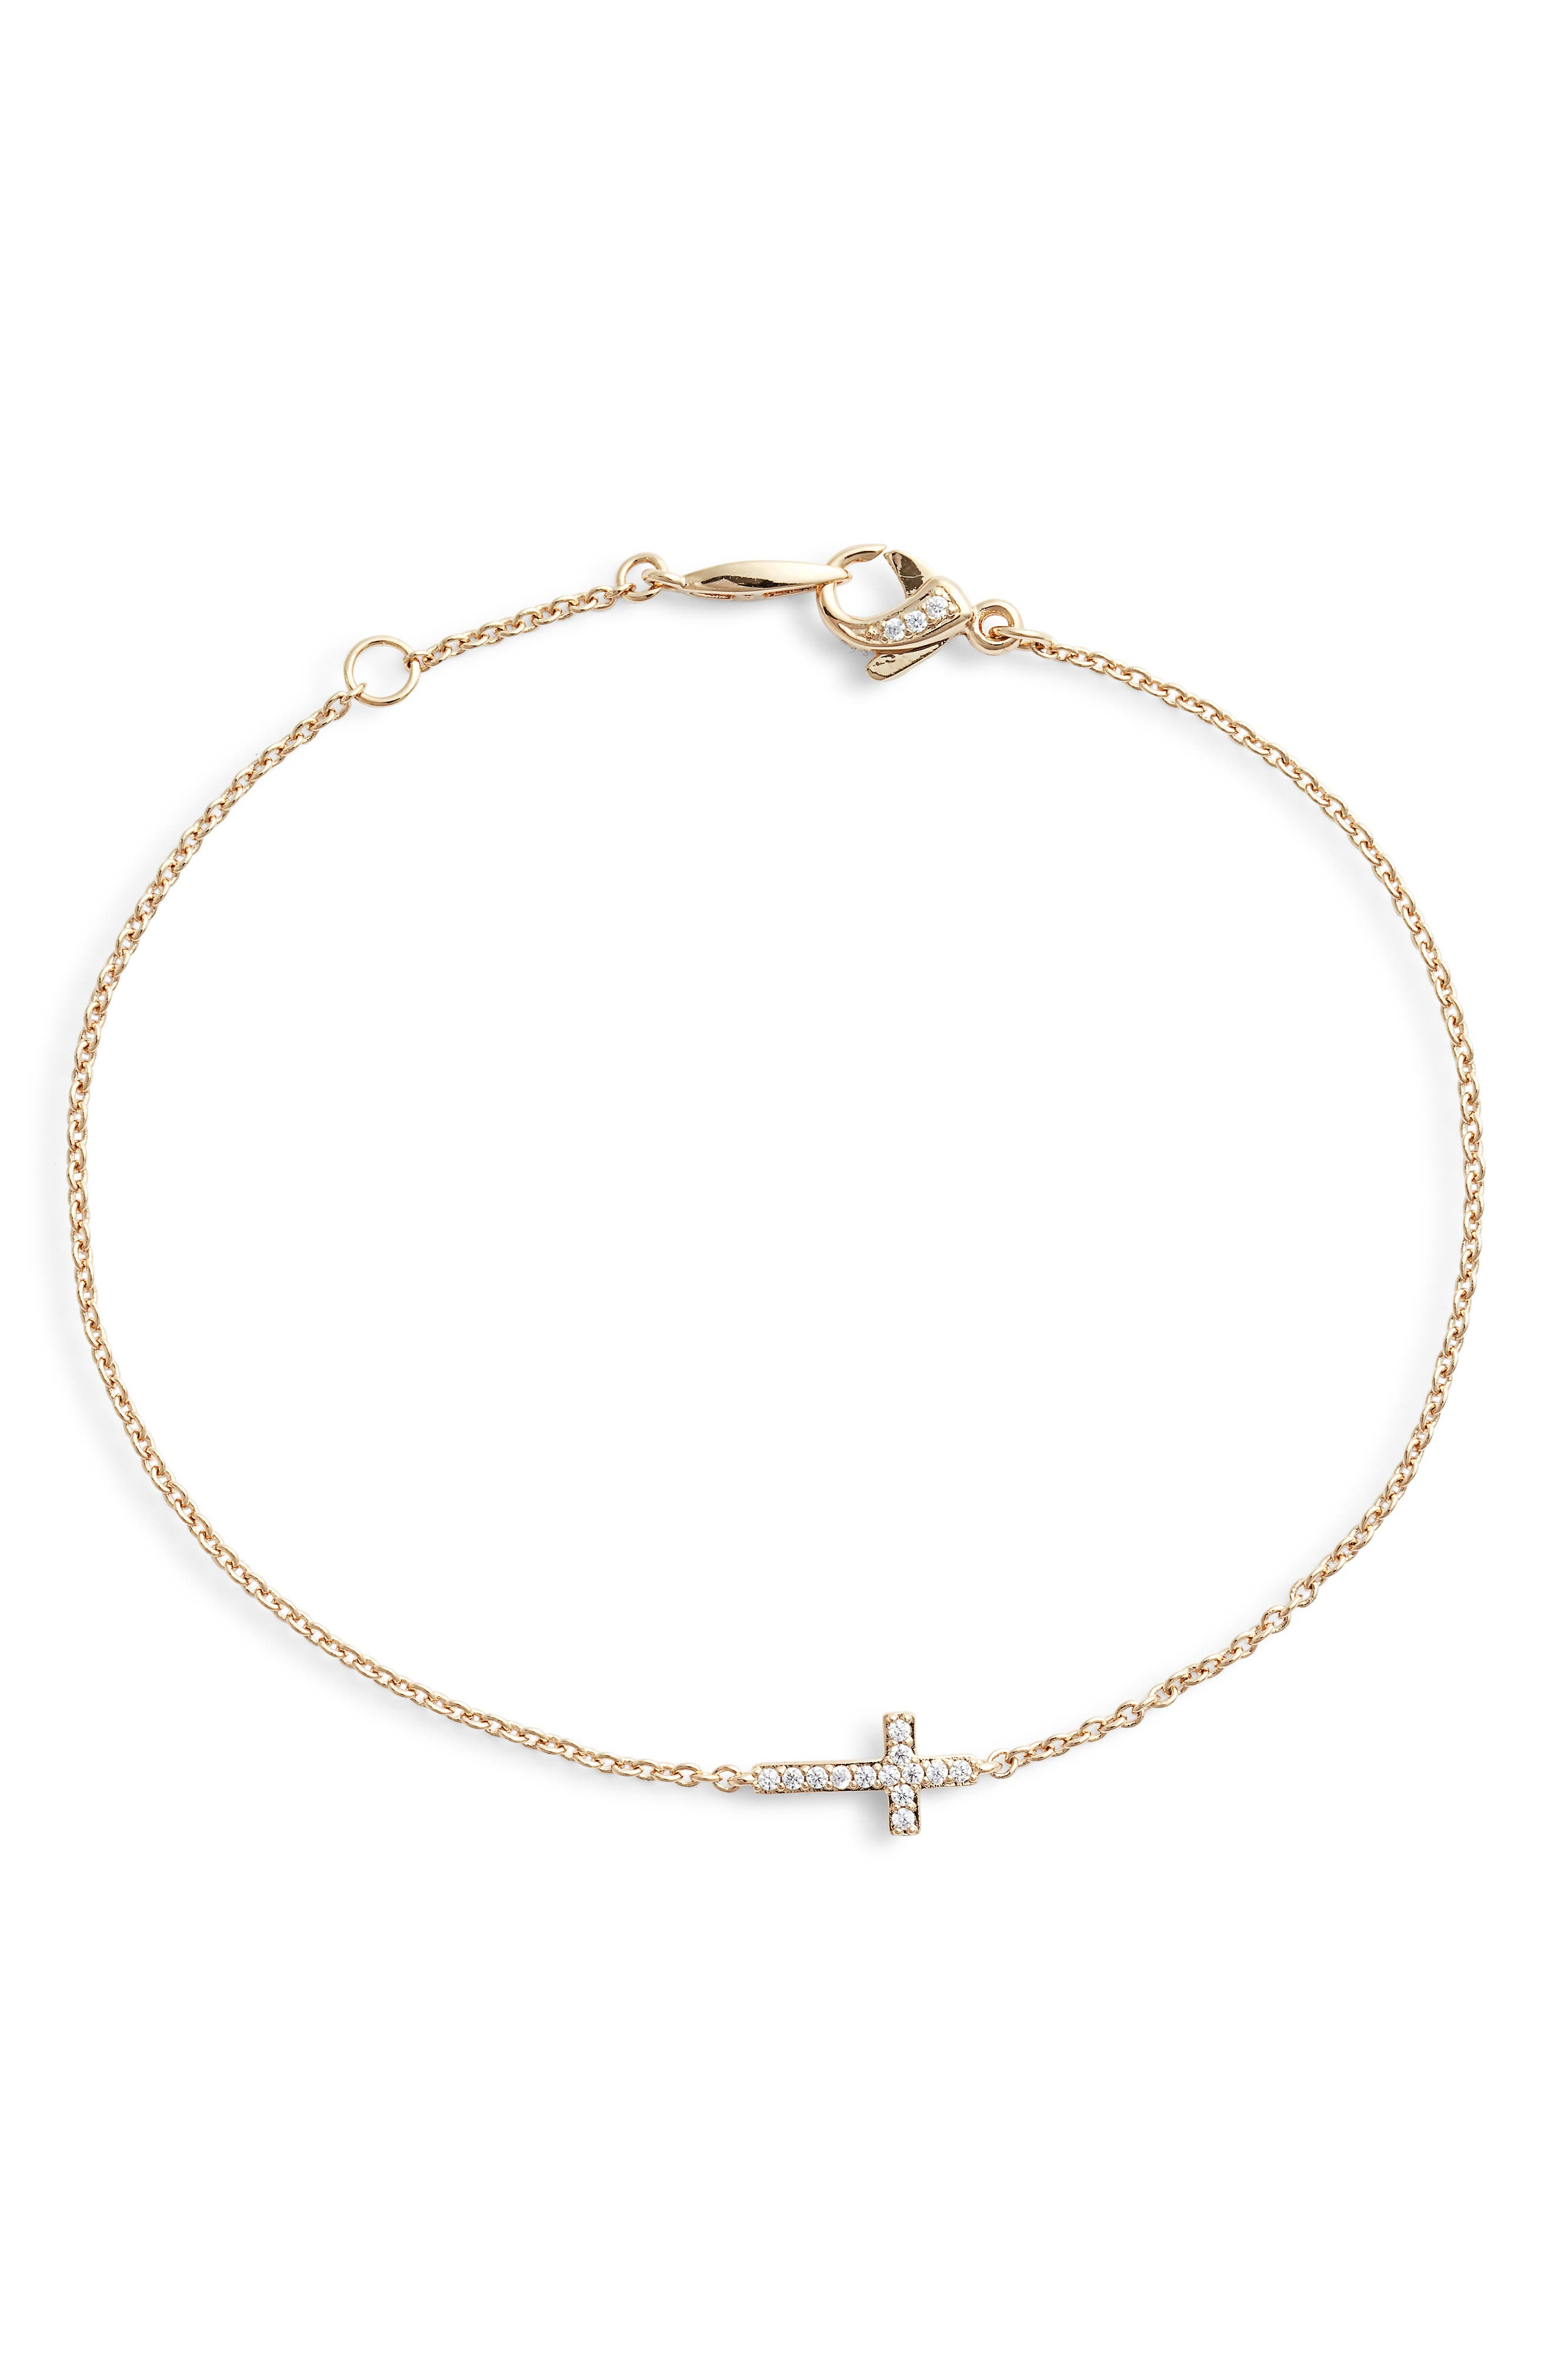 NADRI, Cross Chain Bracelet, Main thumbnail 1, color, GOLD